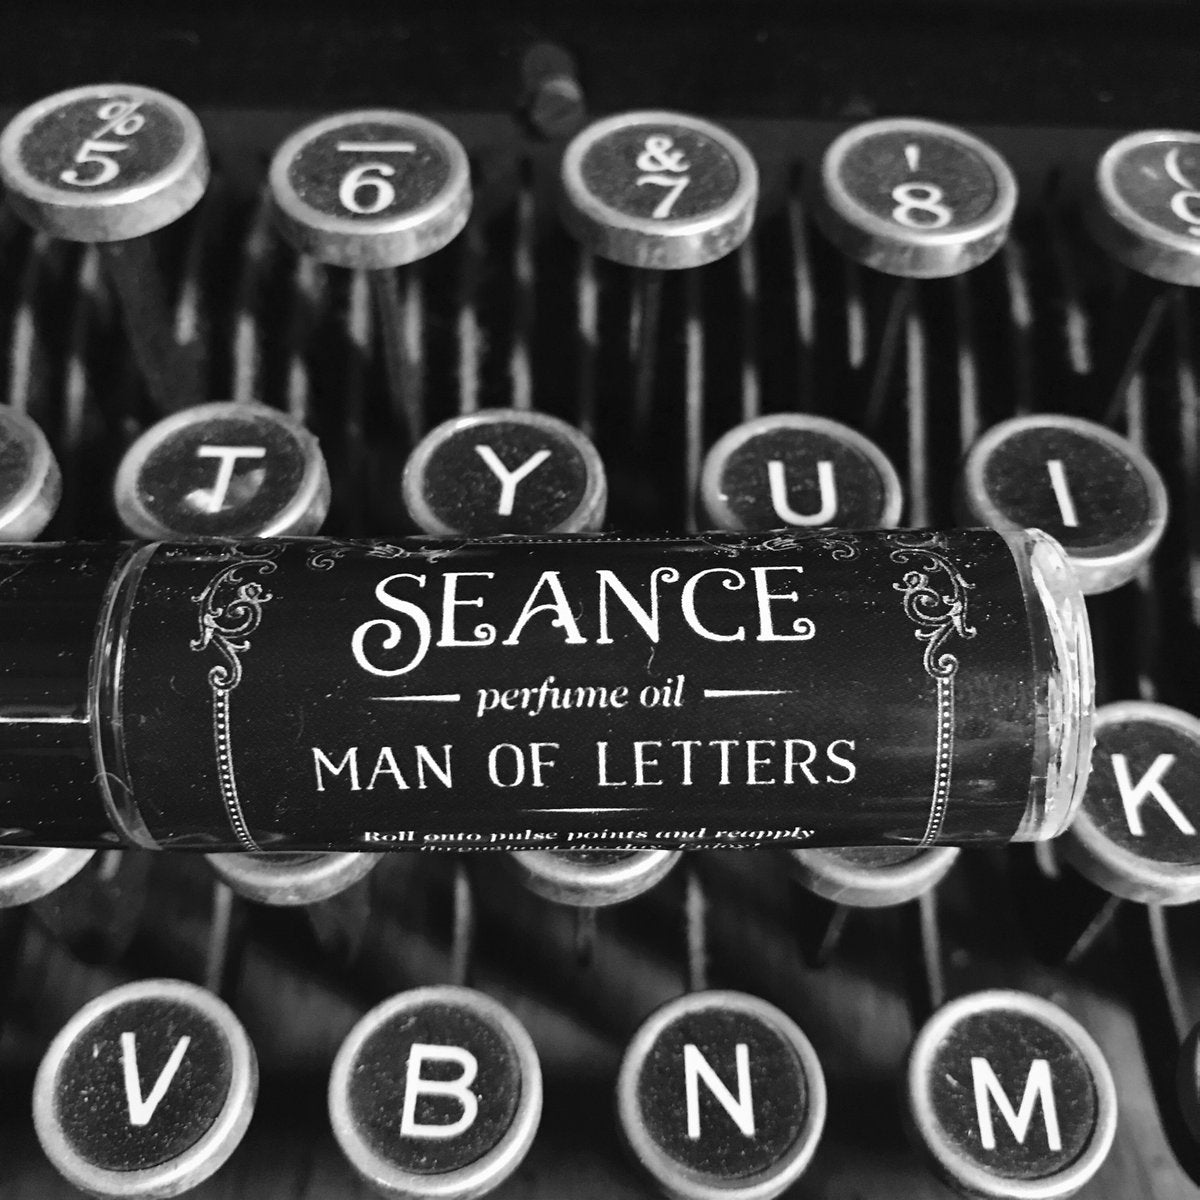 Man Of Letters (scotch, mahogany, smoke, leather)